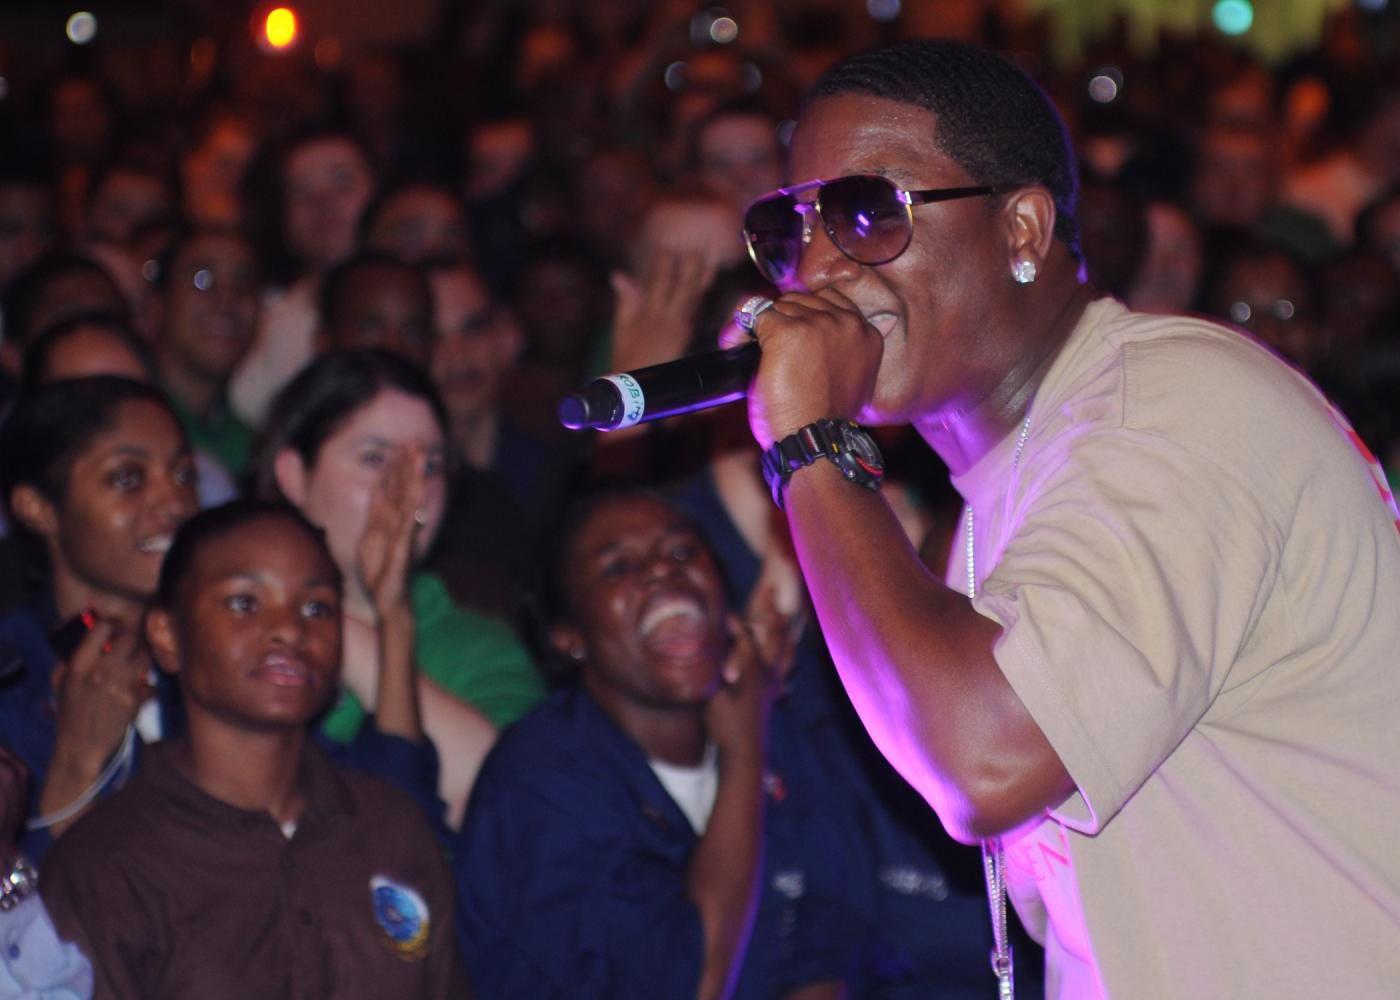 Rapper+Yung+Joc+performs+on+the+USS+Dwight+D.+Eisenhower+aircraft+carrier.+Photo+courtesy+of+Wikimedia+Commons